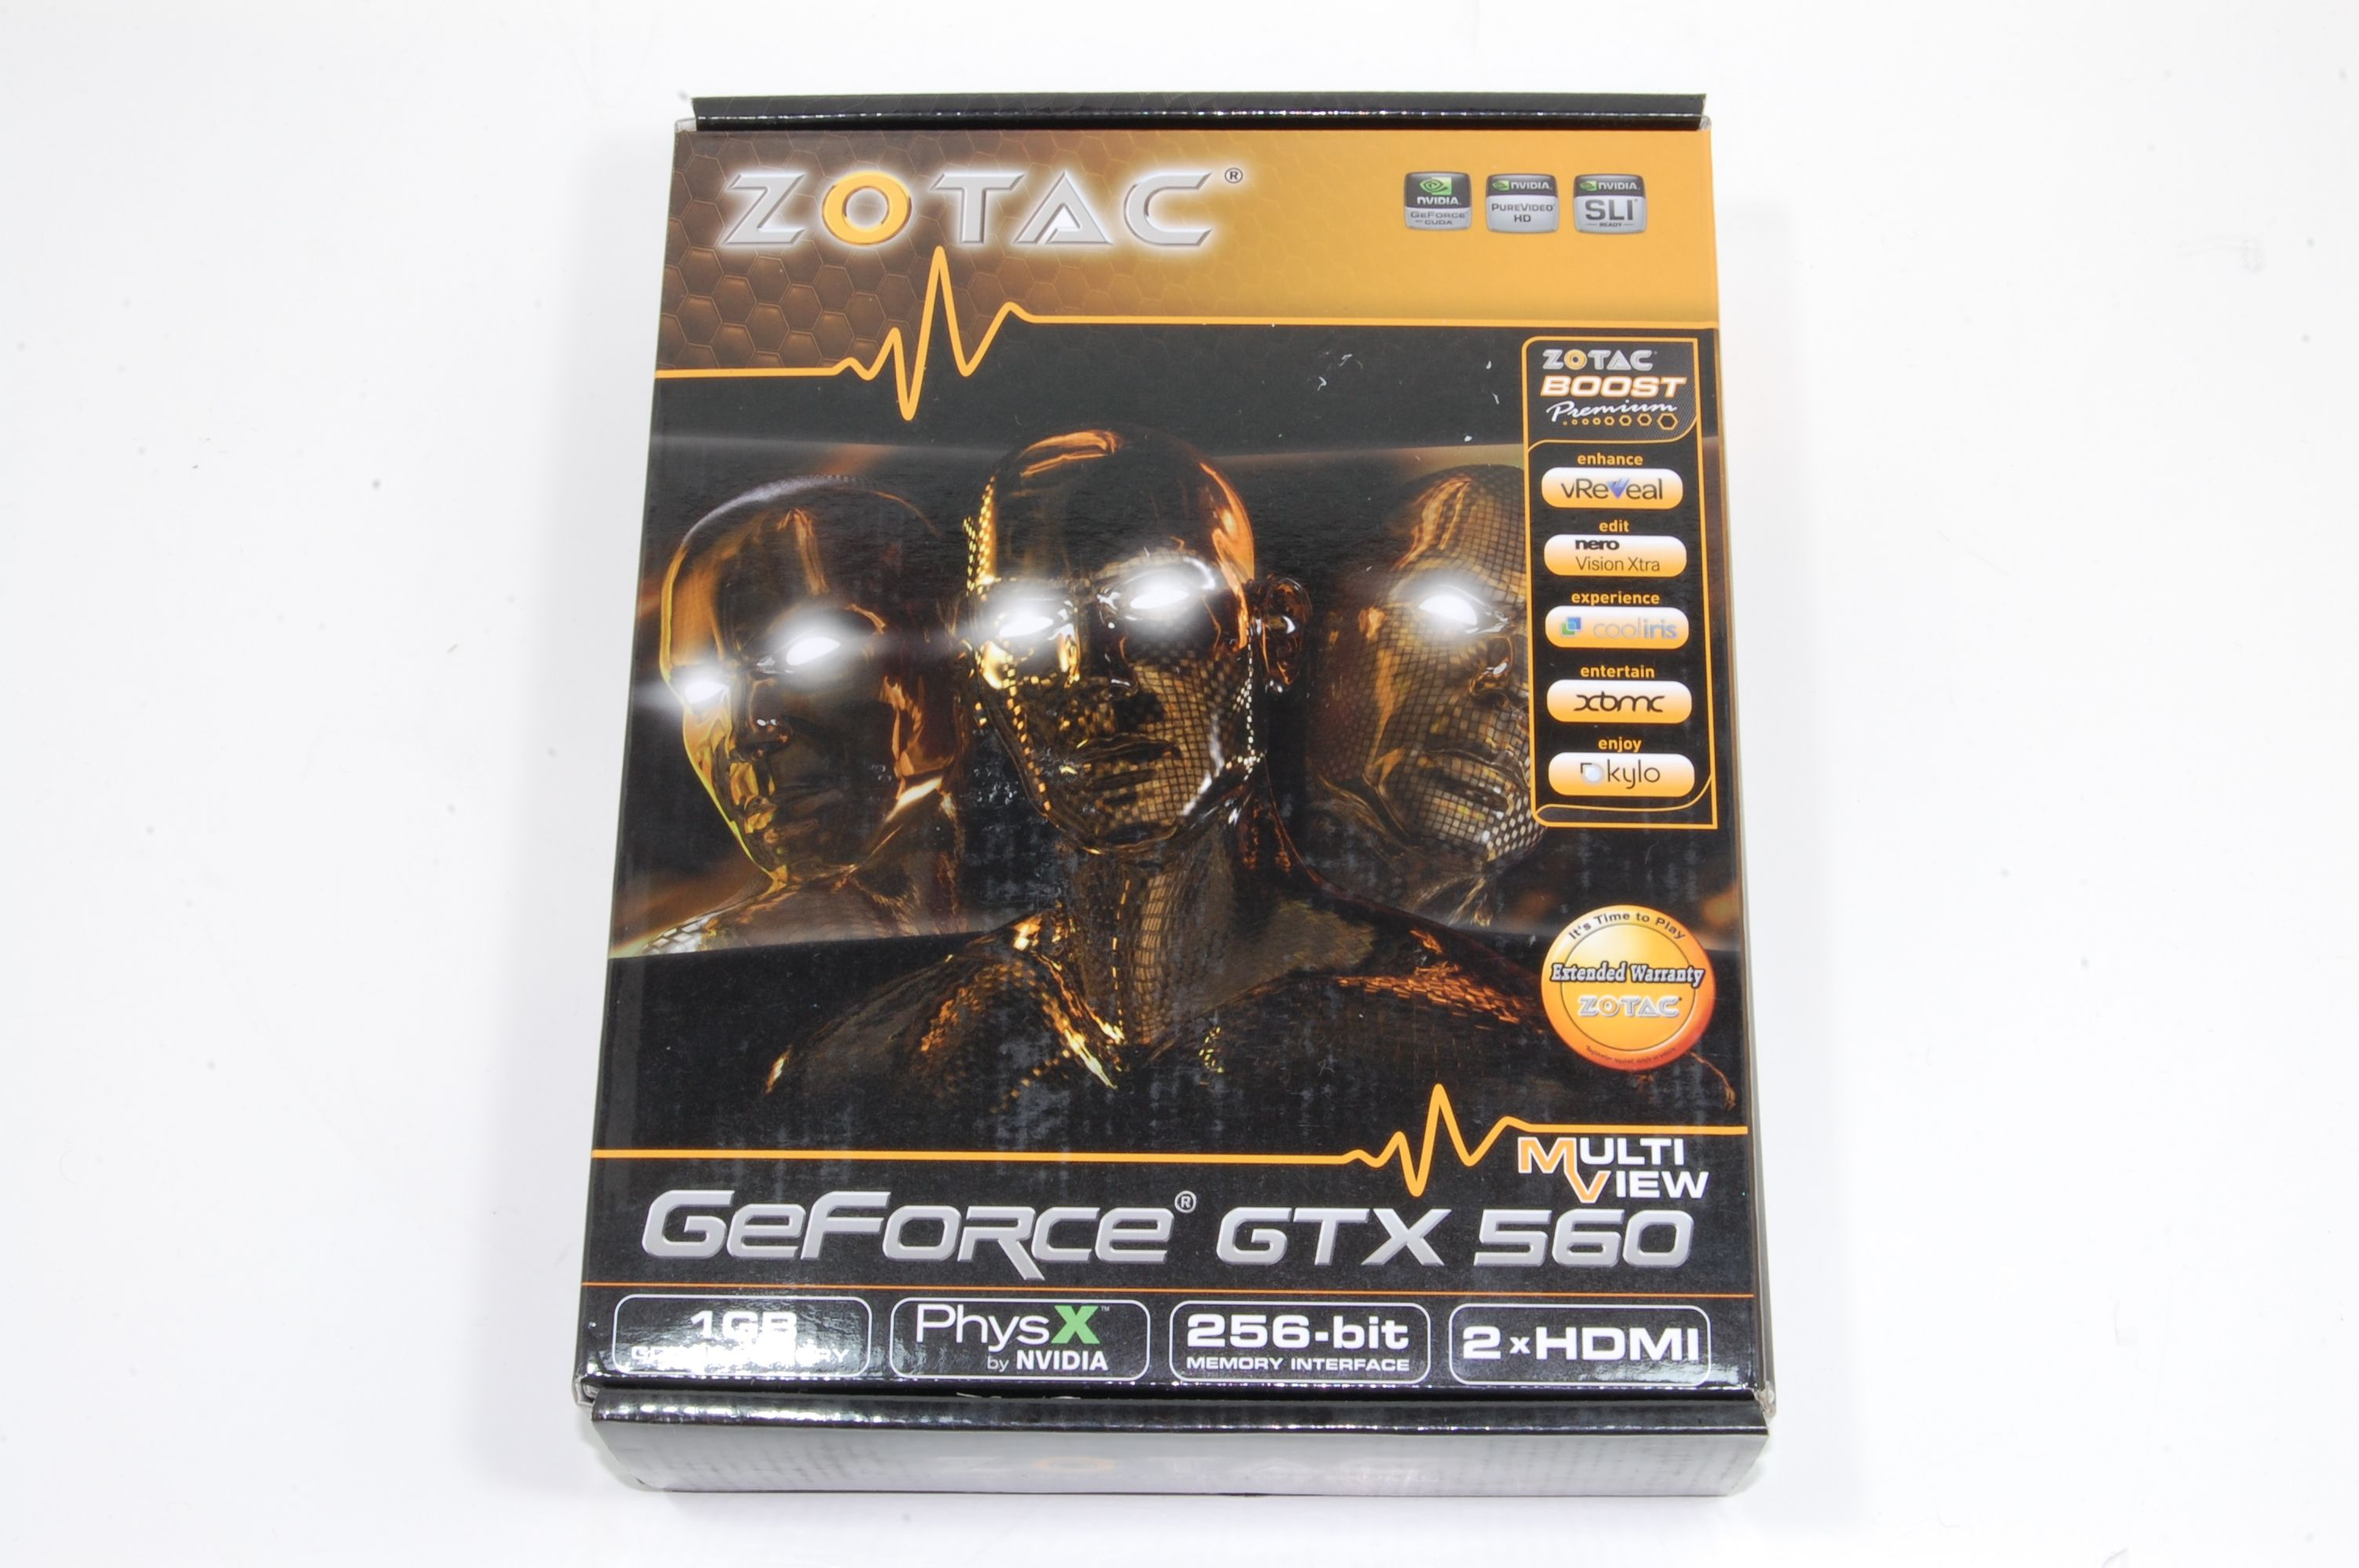 Zotac GTX 560 Multiview Packaging